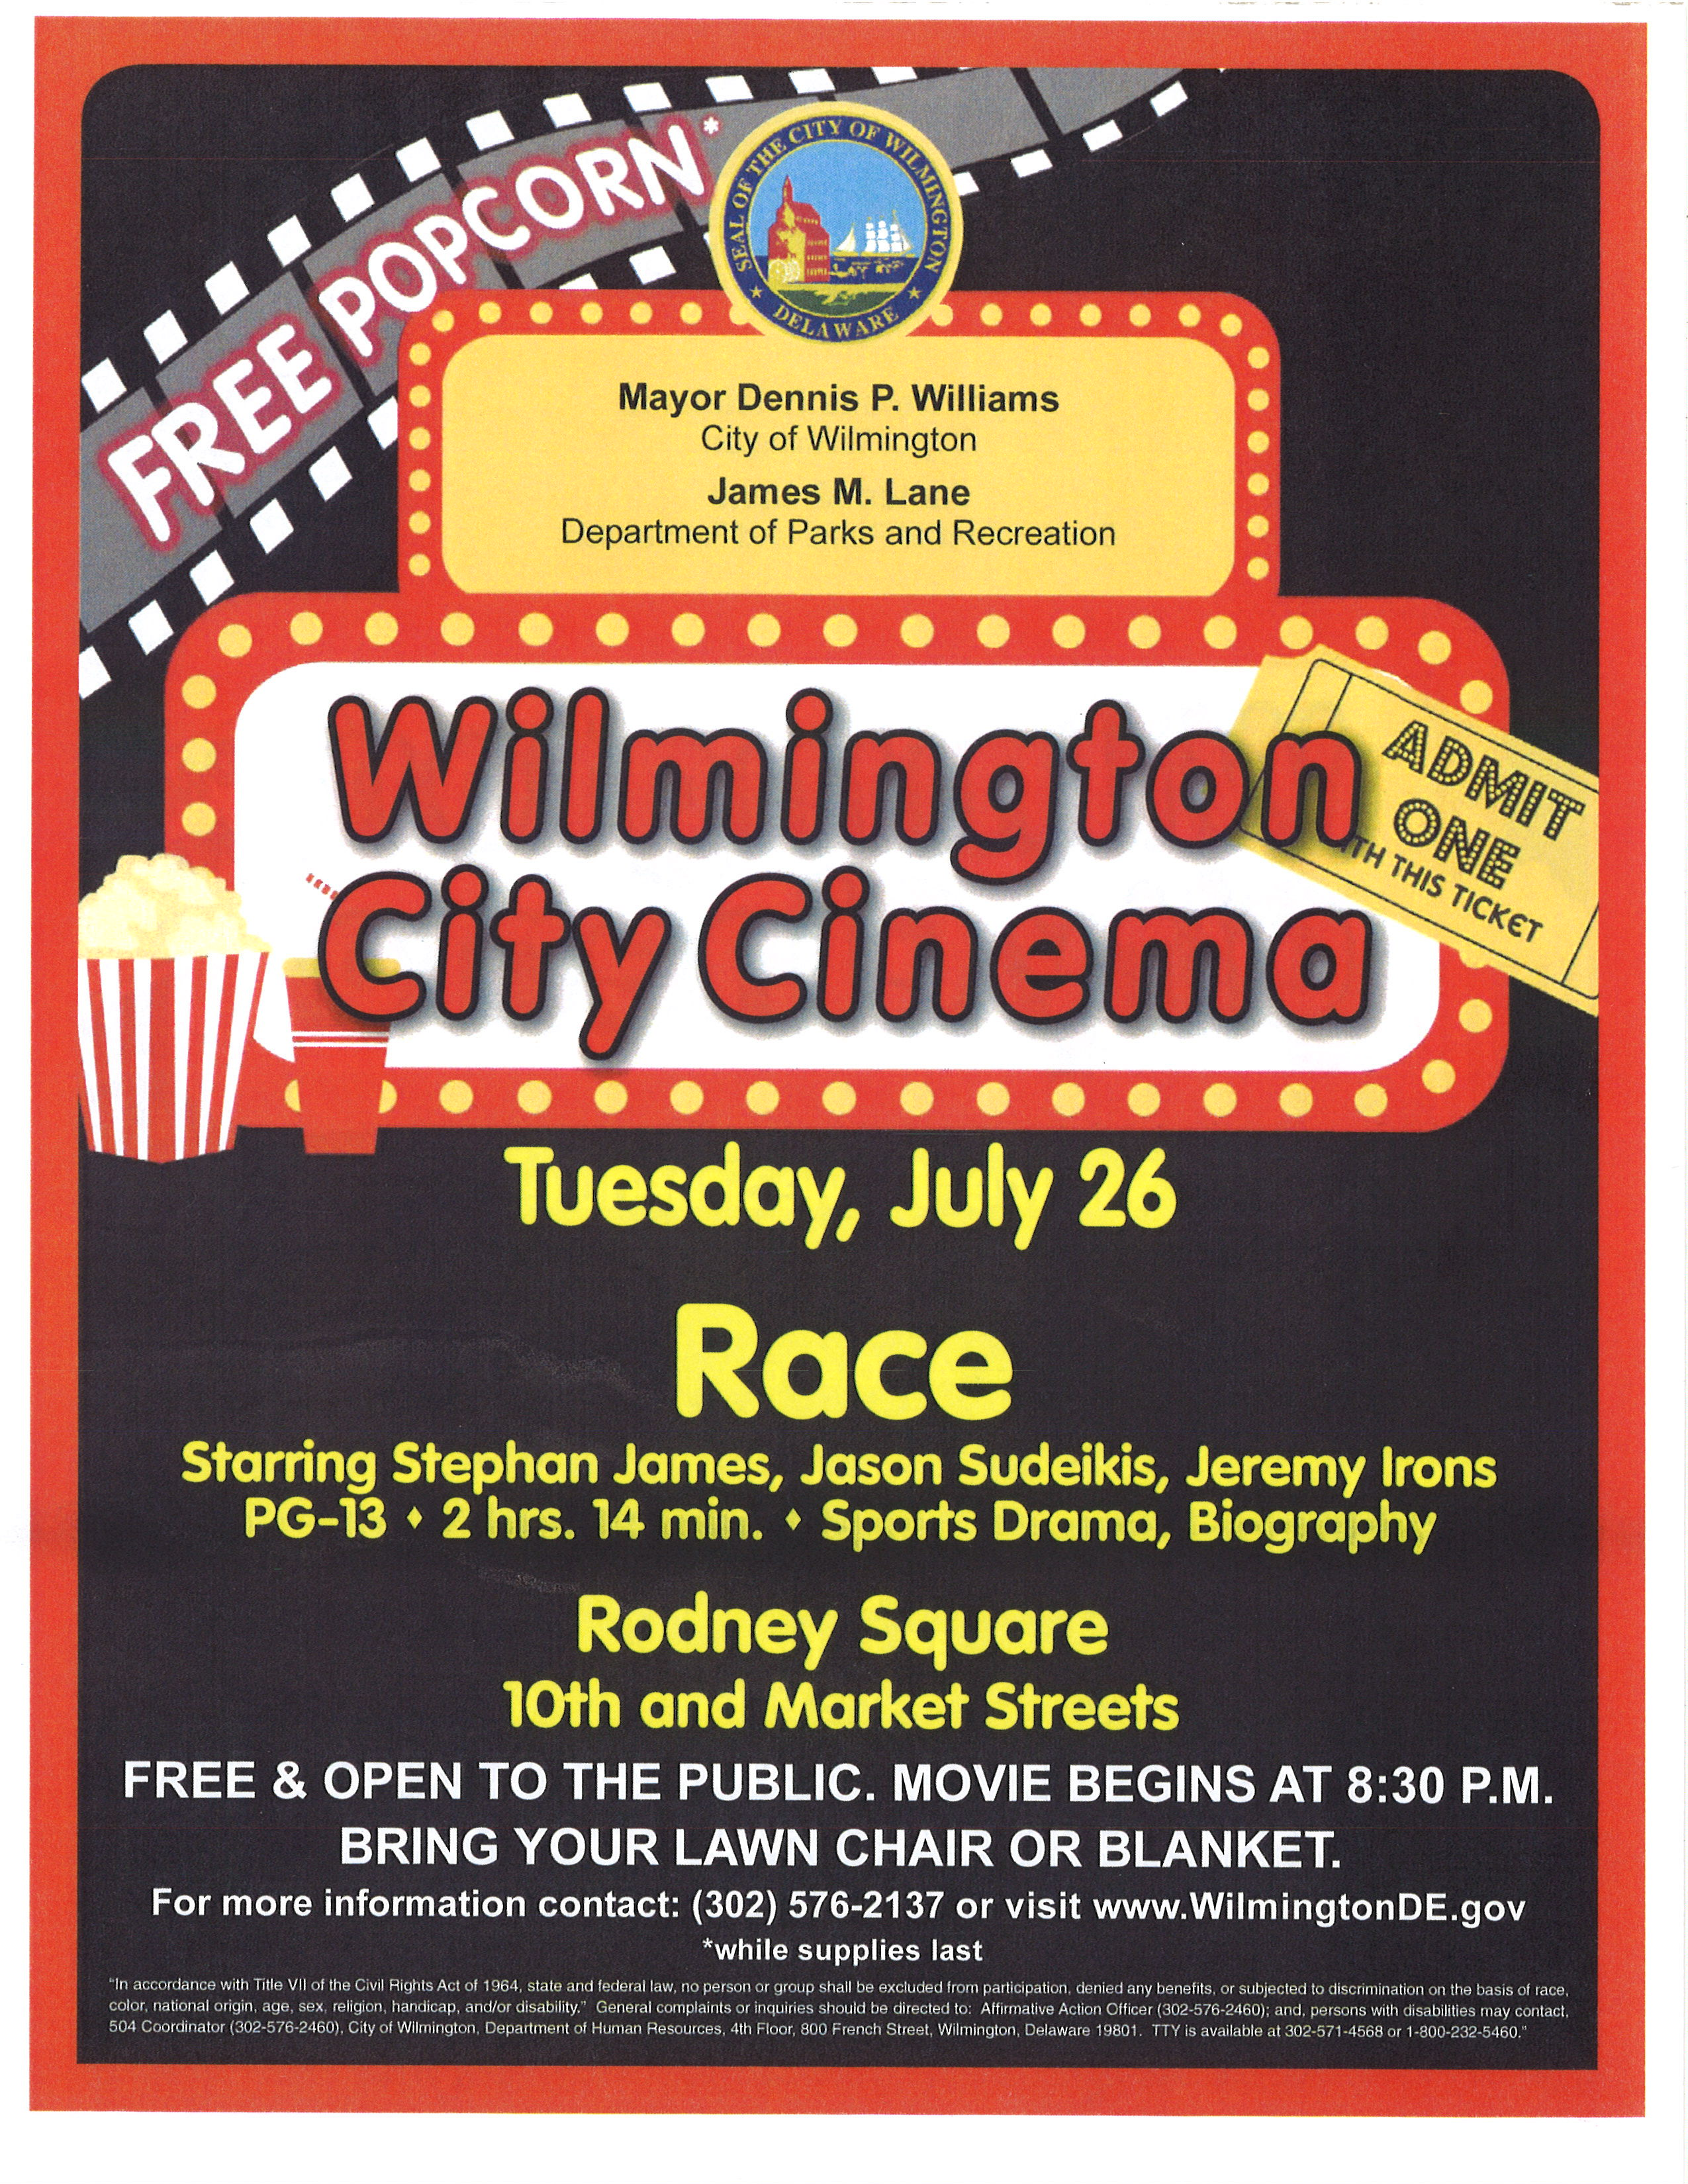 Rodney Square Events Free Movie Nights